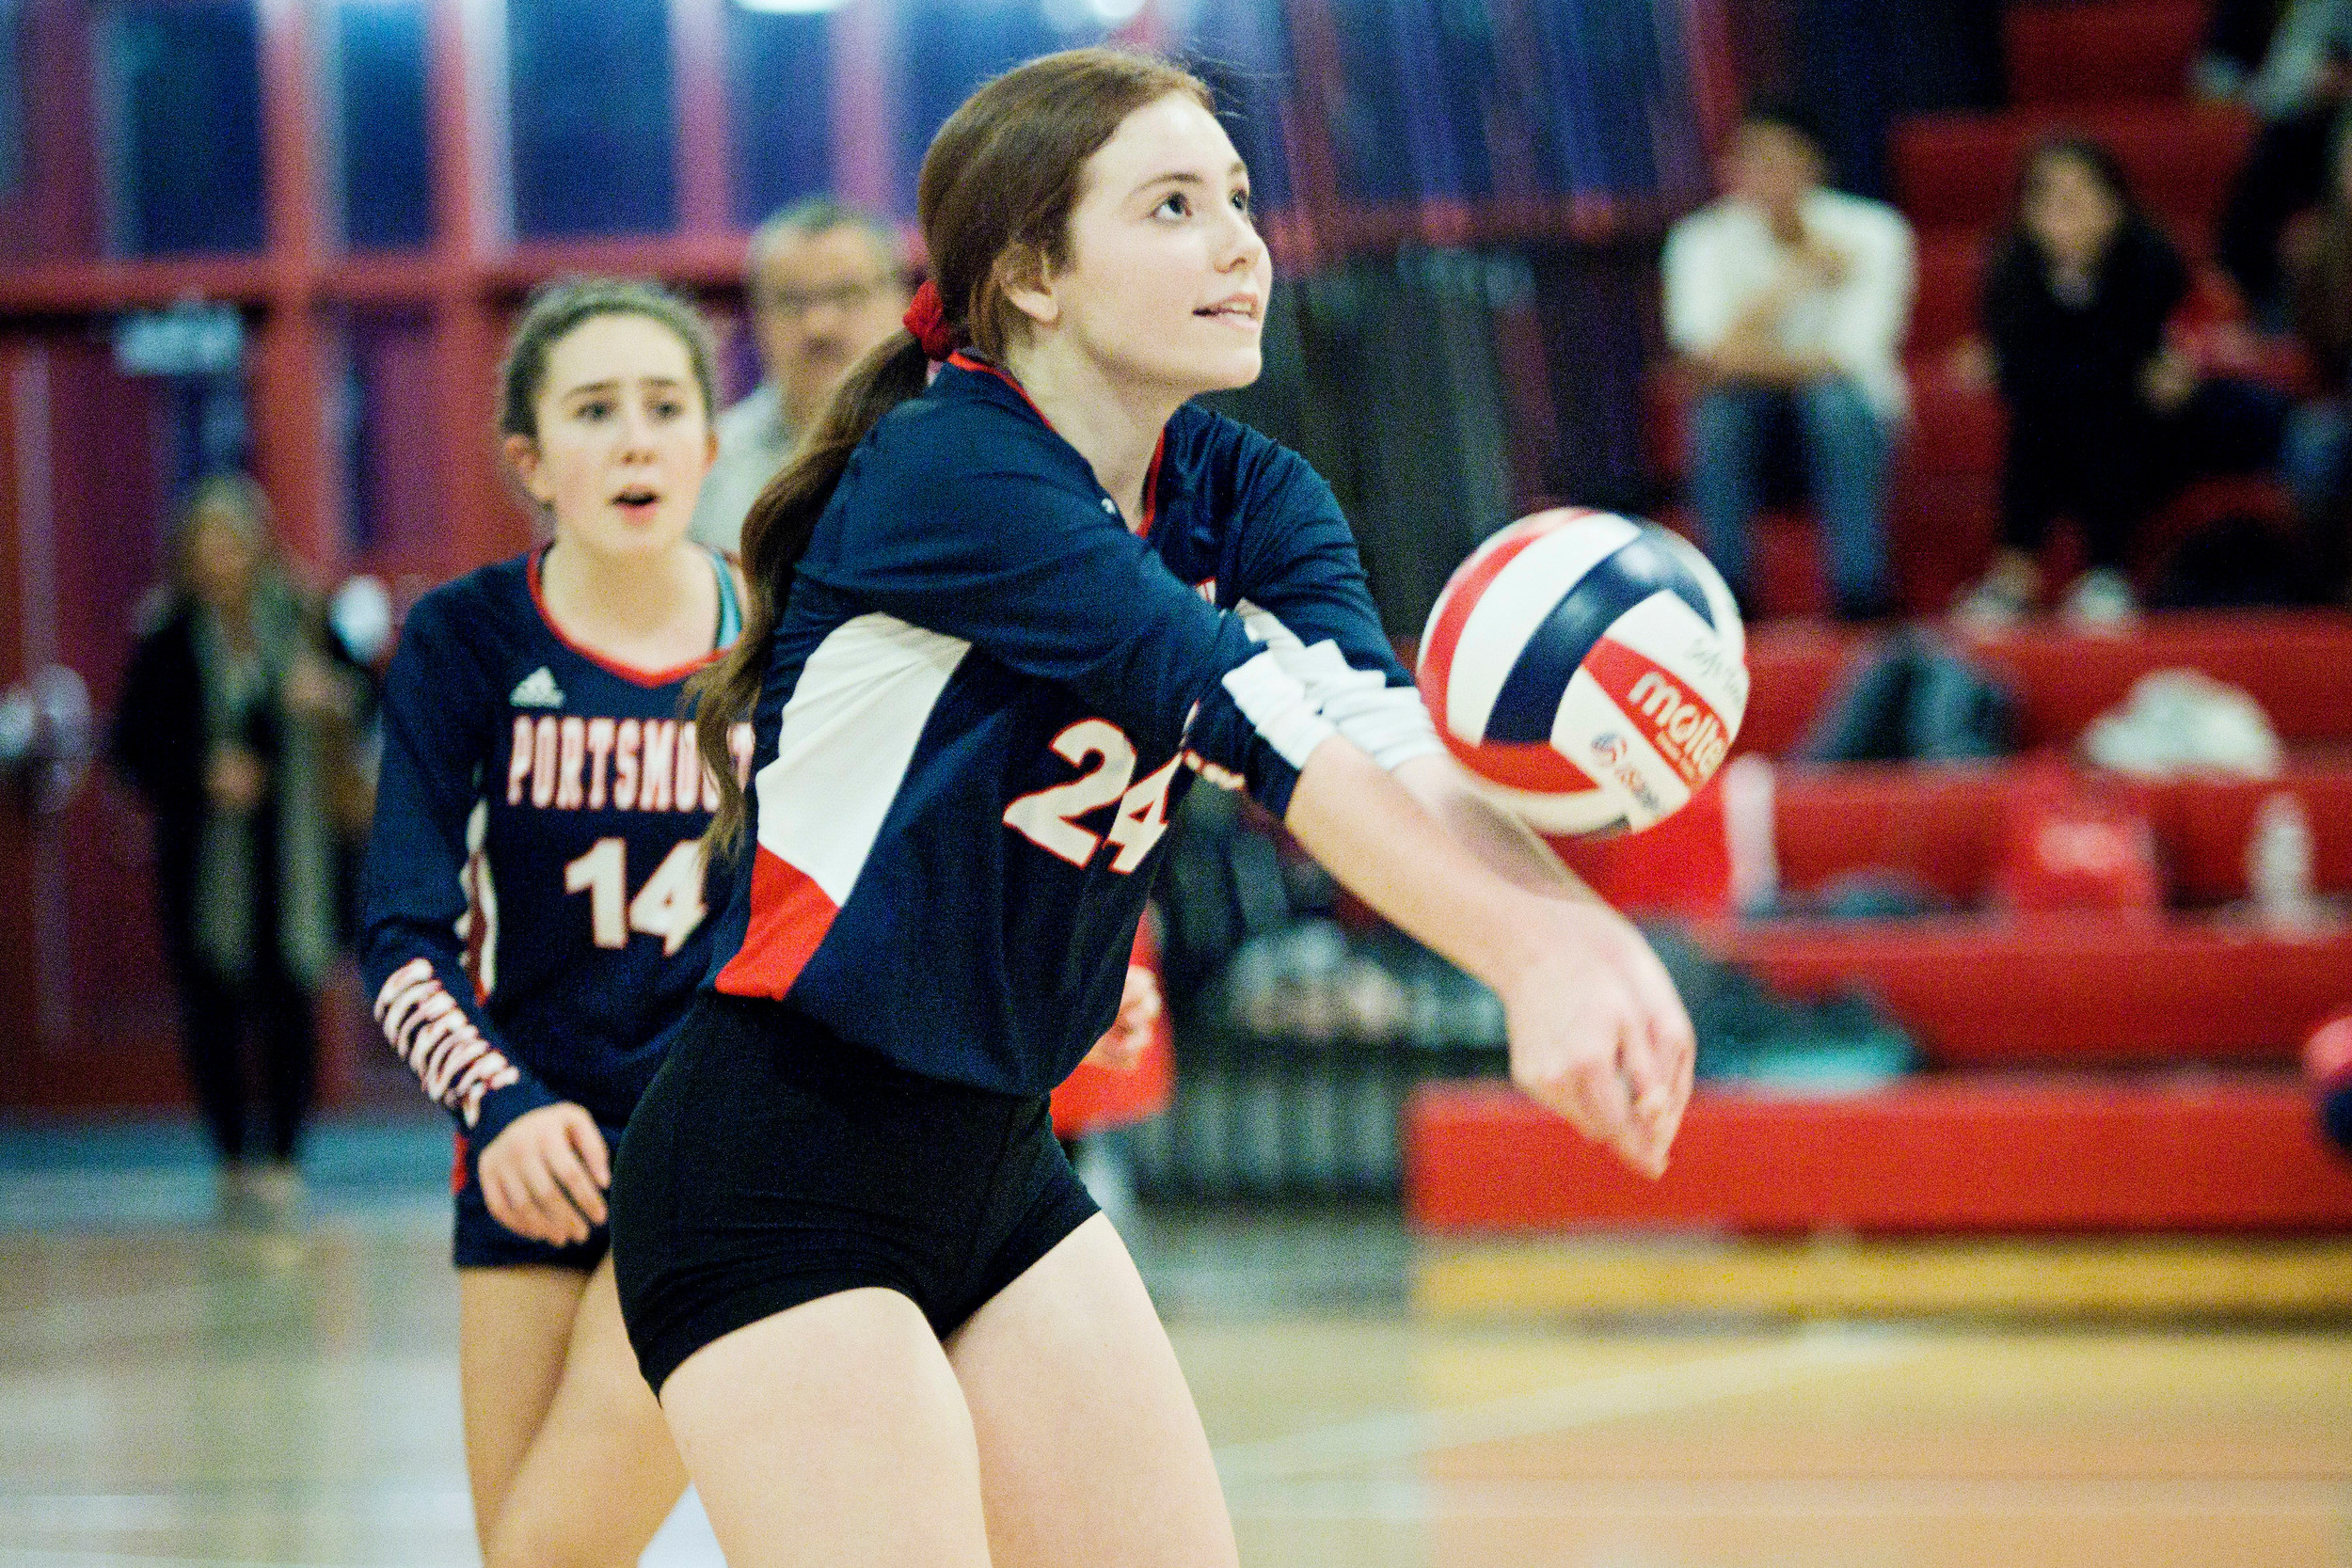 Grace Riccio bumps the ball to a teammate.